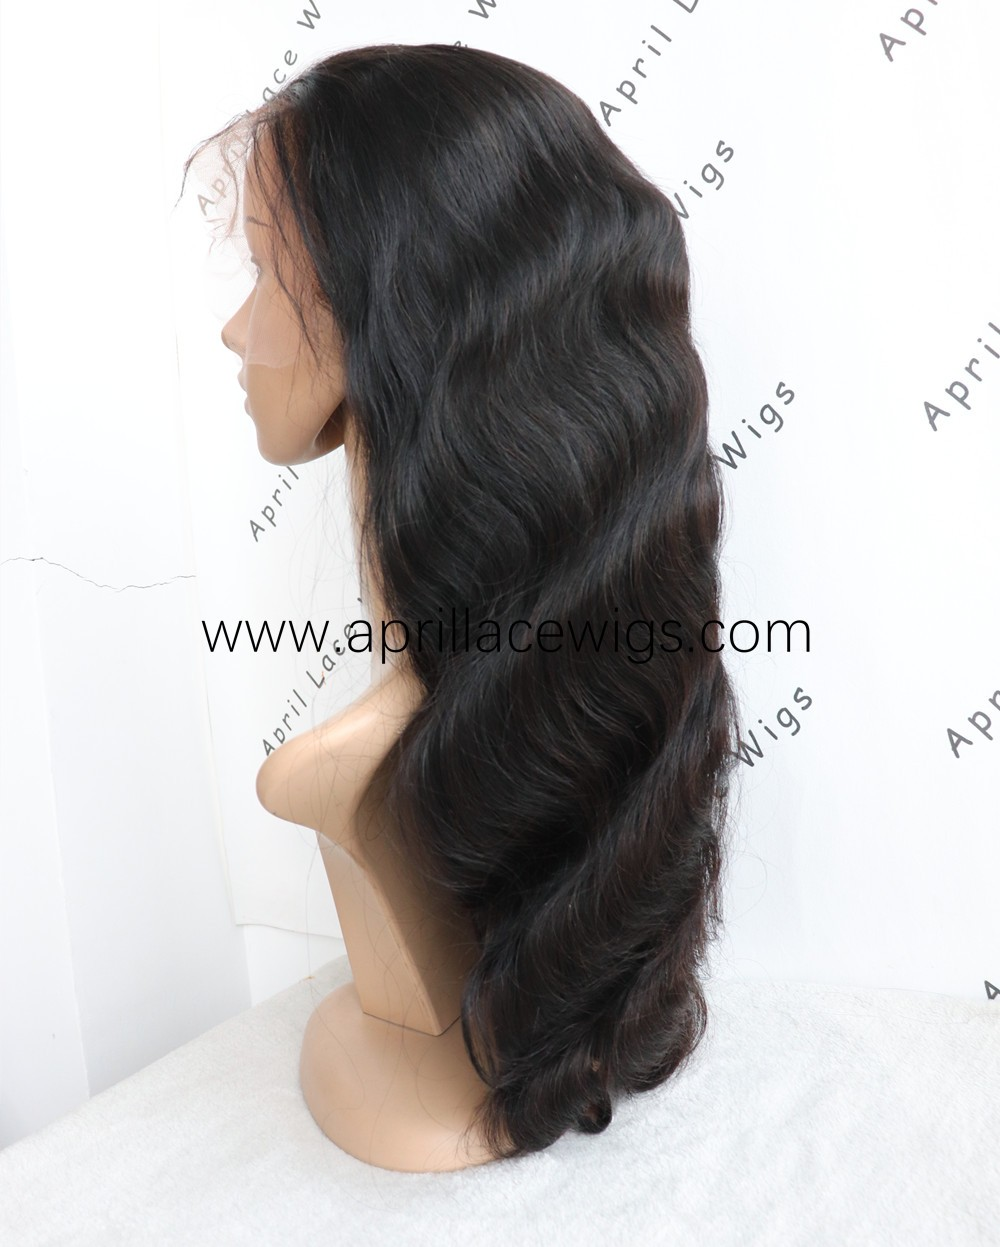 body wave 360 wig Brazilian virgin